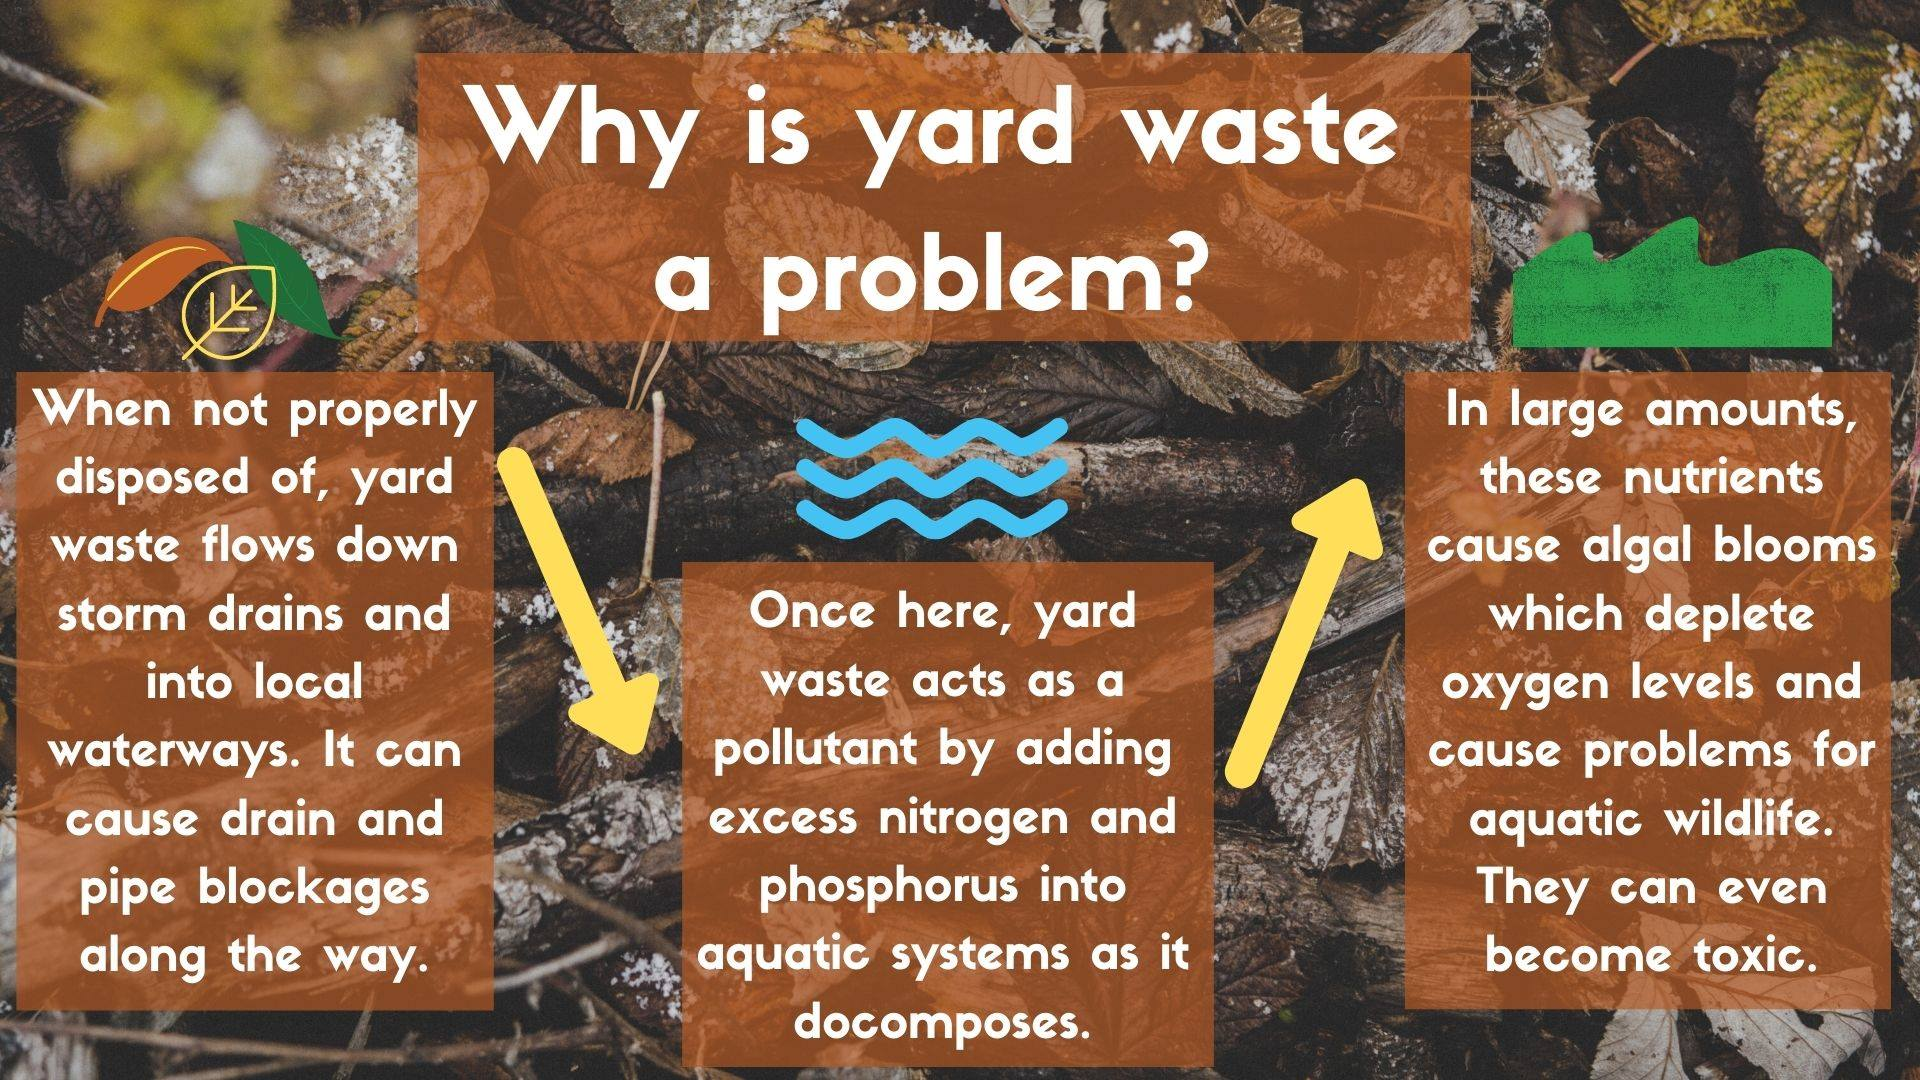 yard waste contributes to water pollution